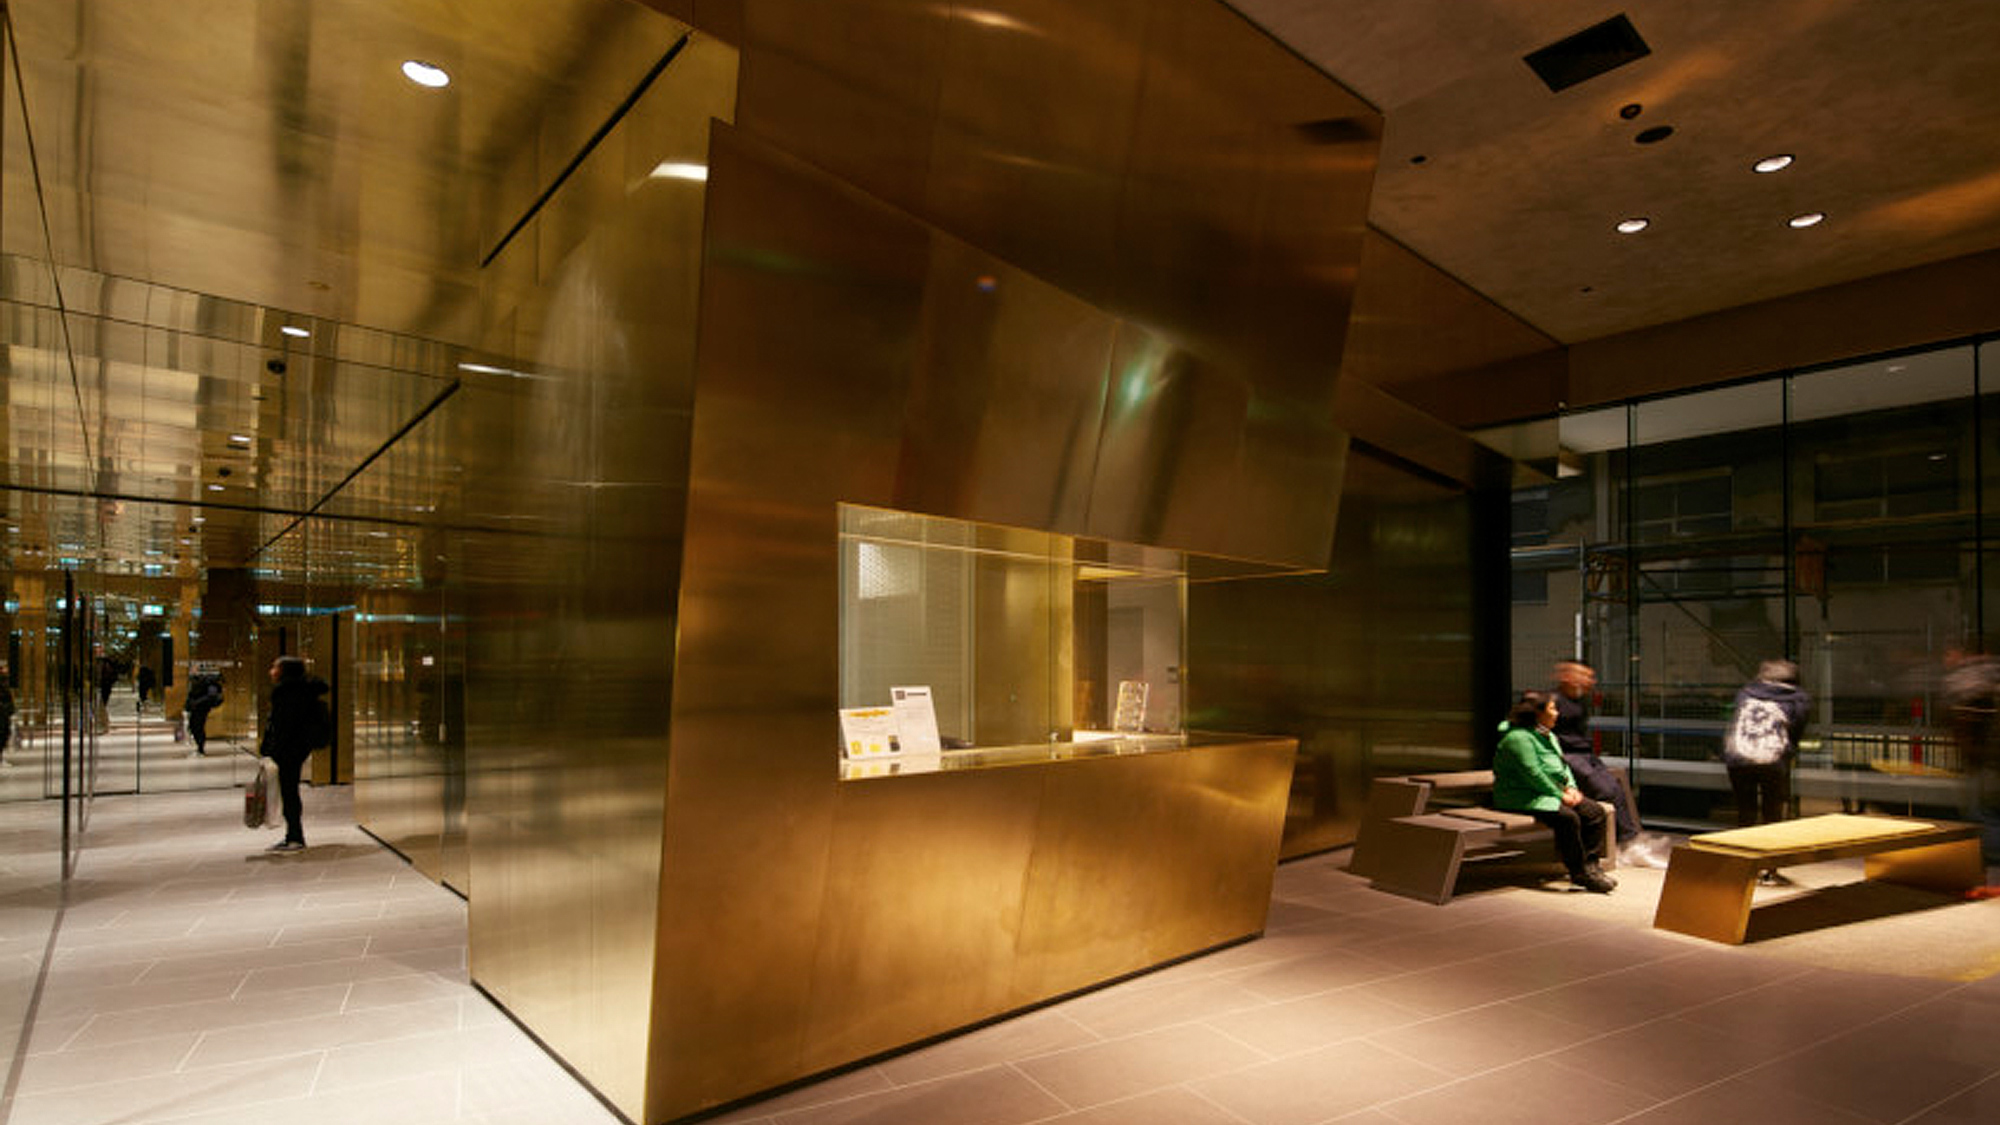 Building interior in Gold